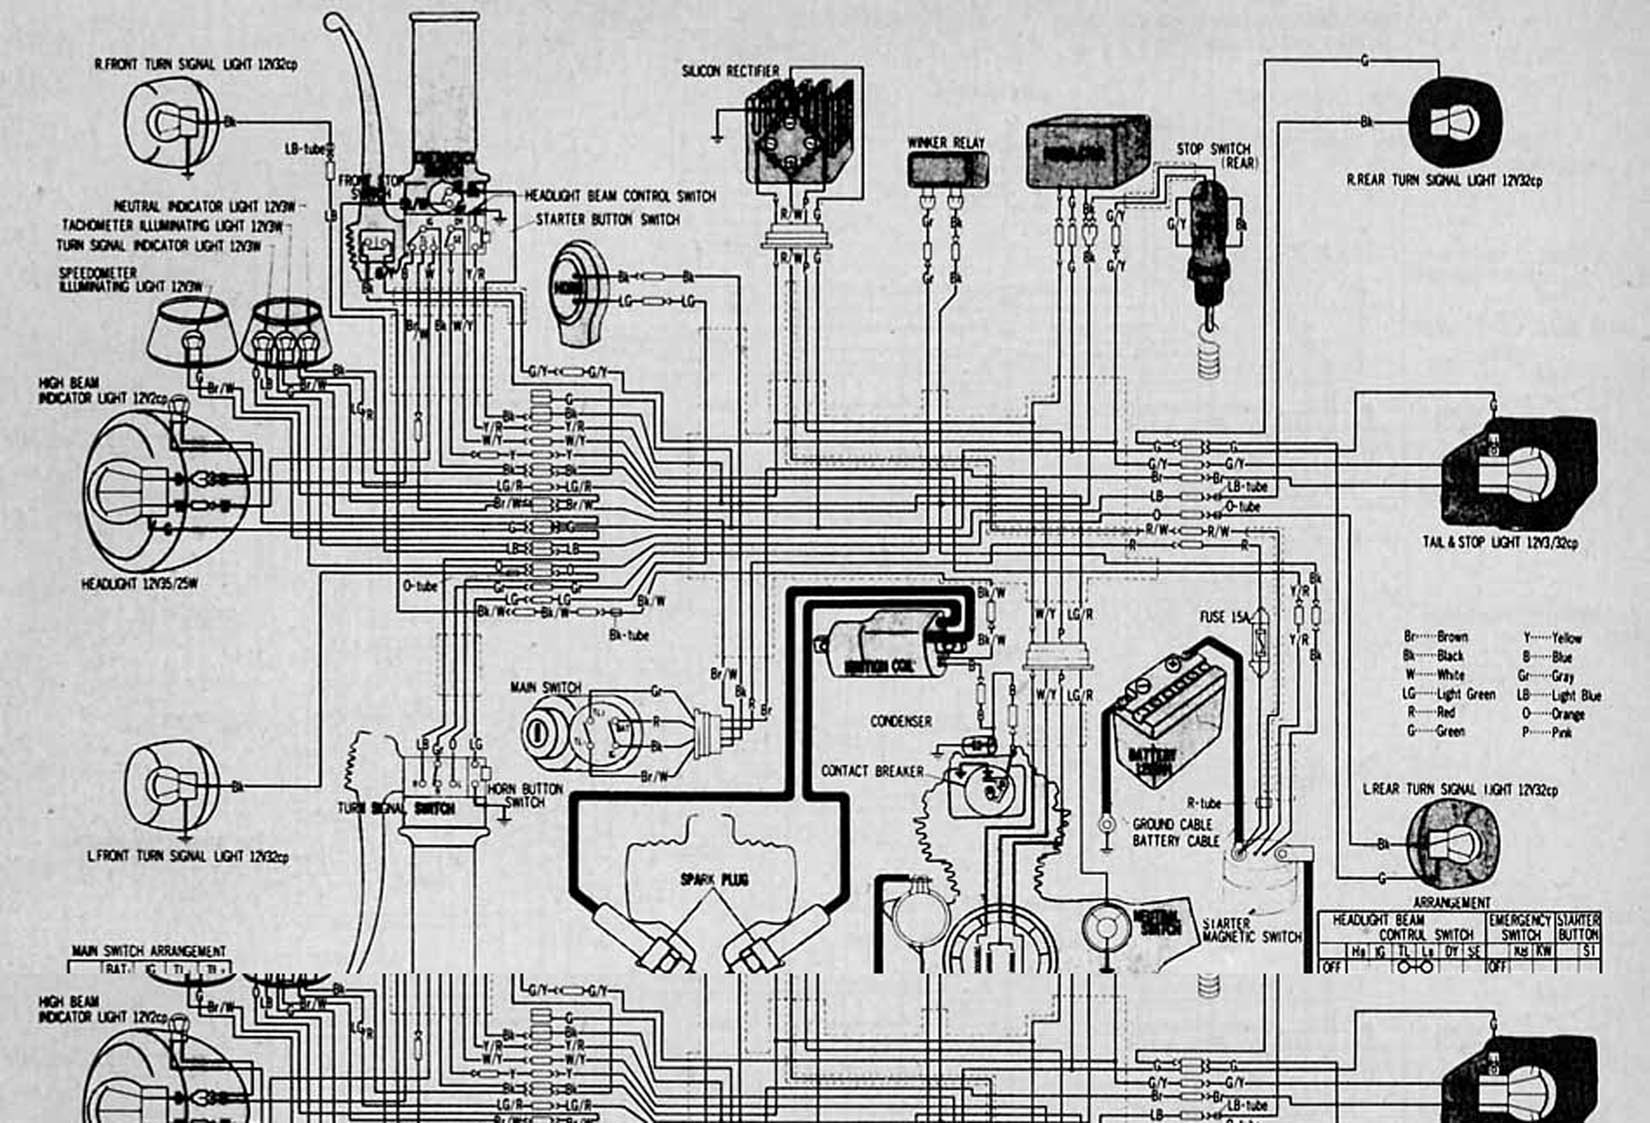 f48a cb200 wiring diagram | wiring resources  wiring resources